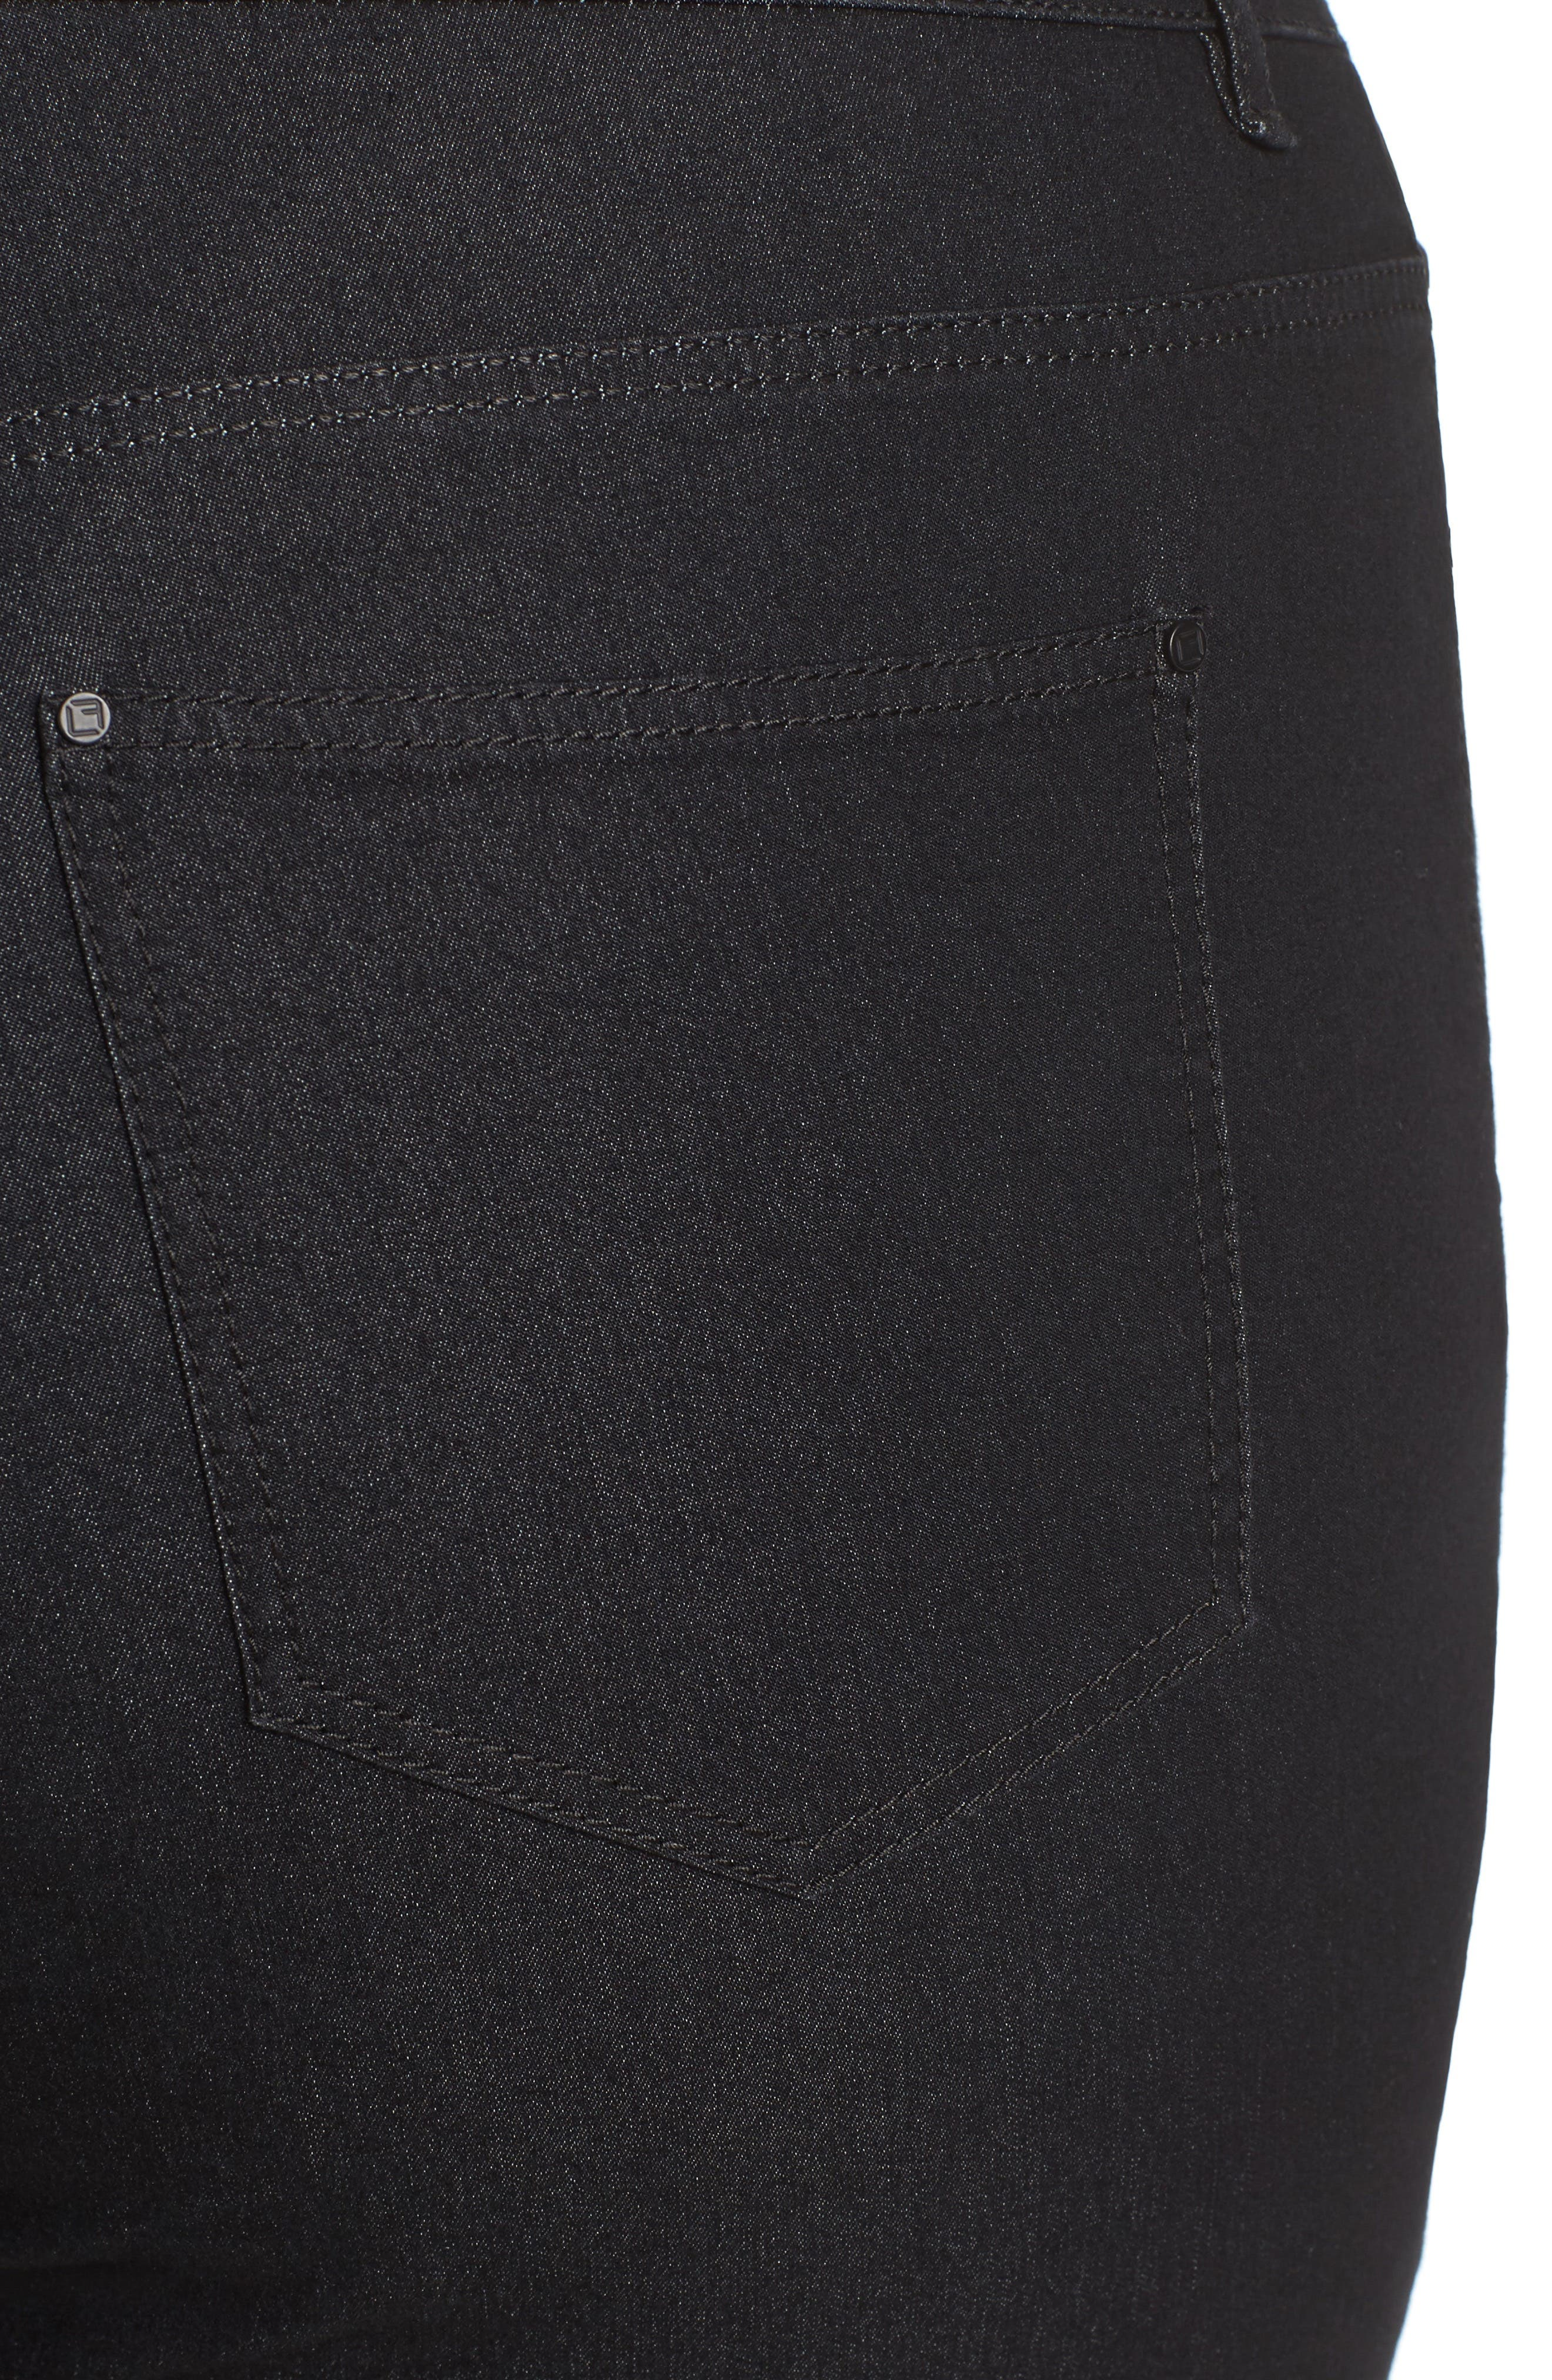 Thompson Stretch Bootcut Jeans,                             Alternate thumbnail 4, color,                             001